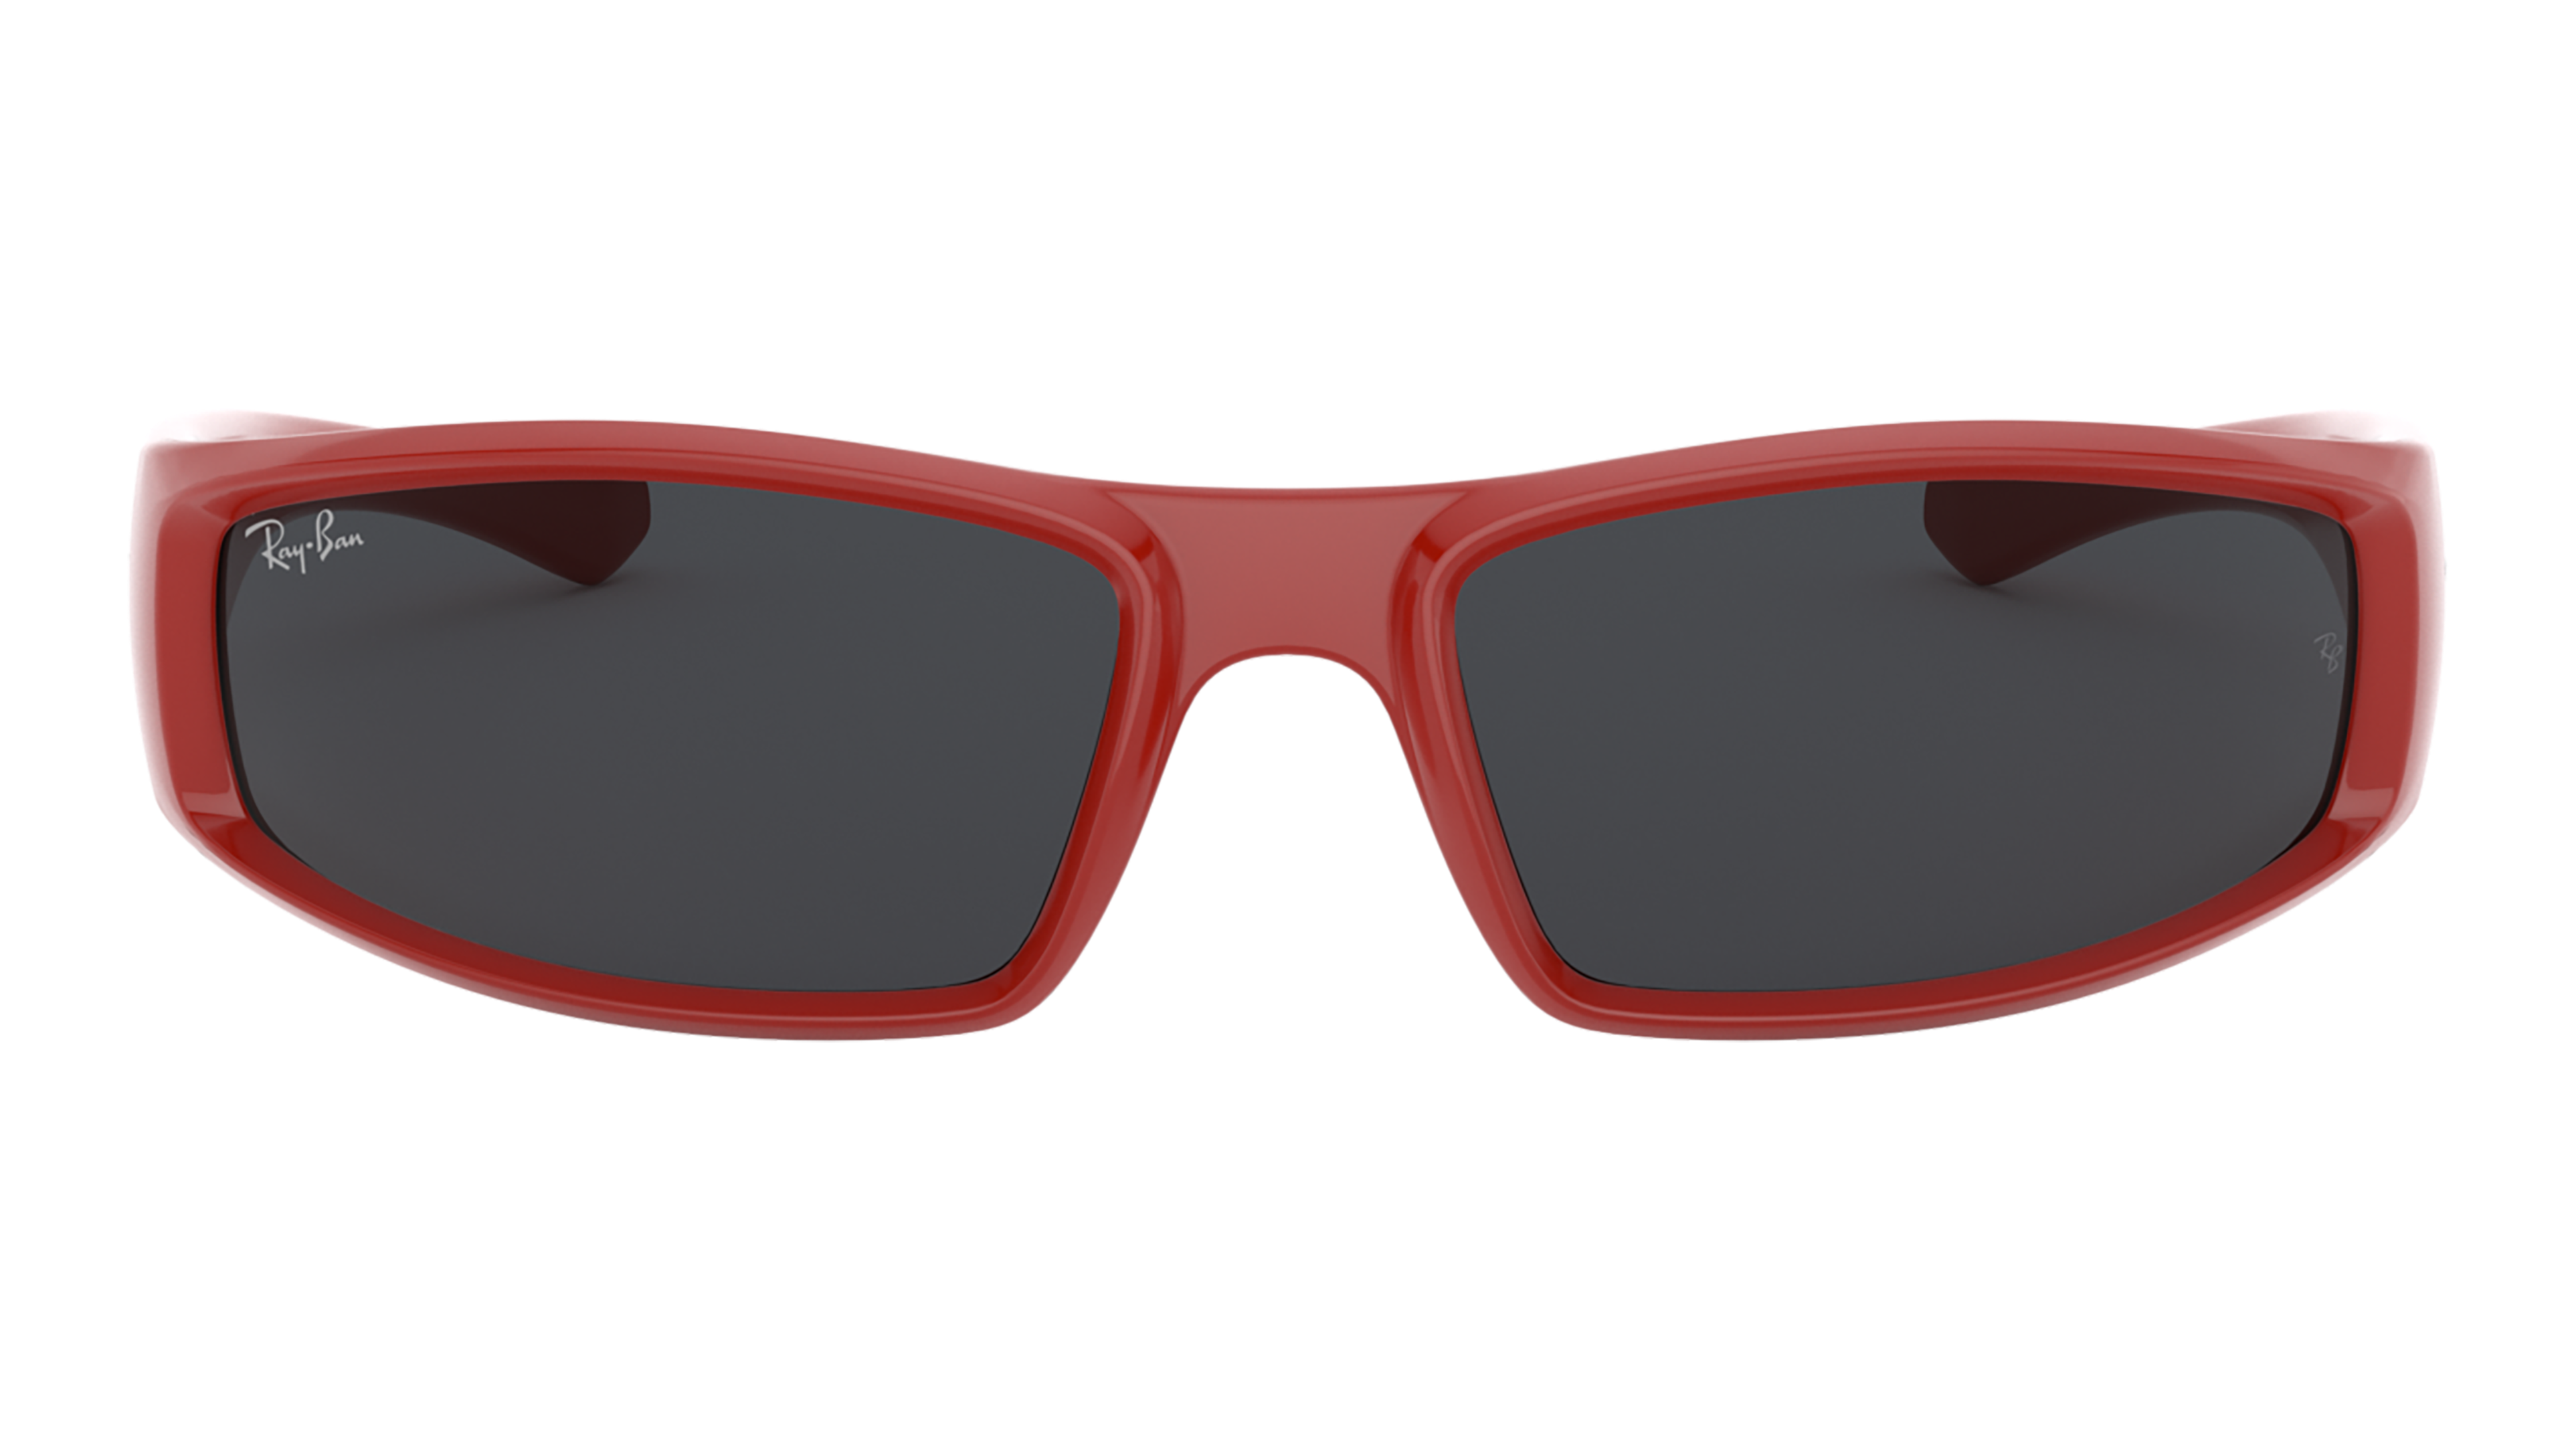 Front Ray-Ban Ray-Ban 0RB4335 648787 58/17 Rood/Grijs